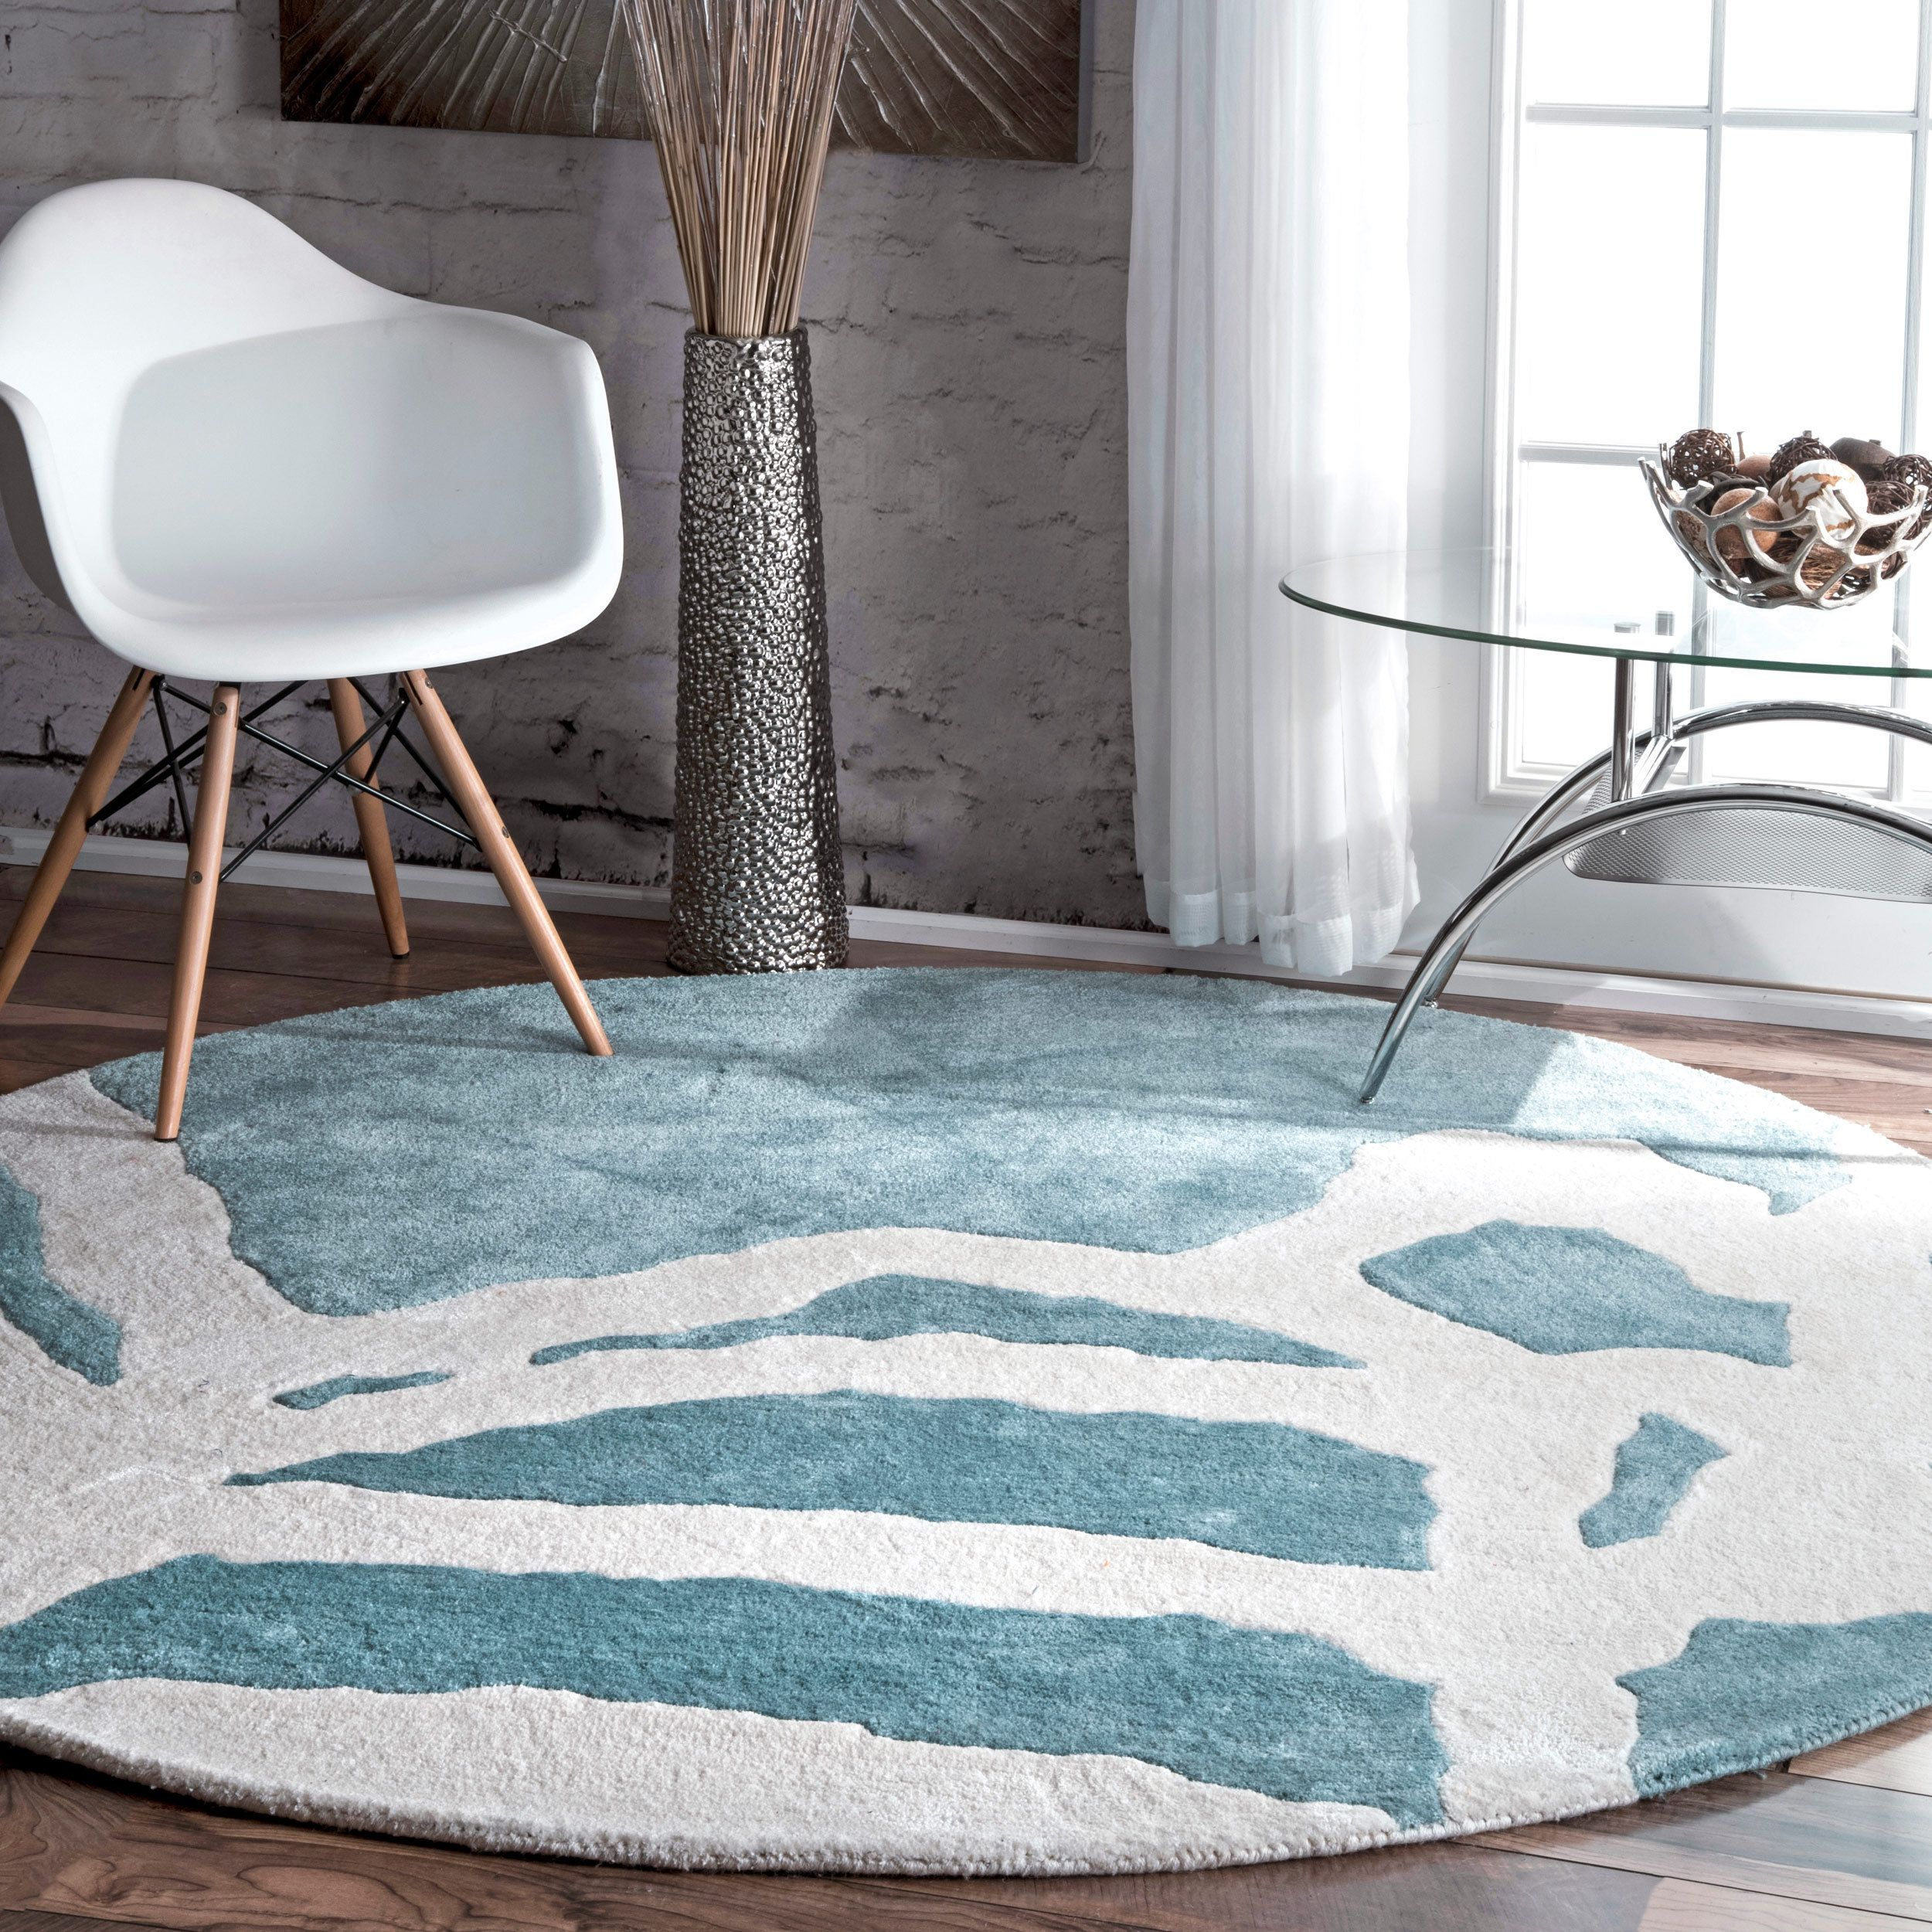 Nuloom contemporary abstract aqua green round rug 6 round aqua green blue size 6